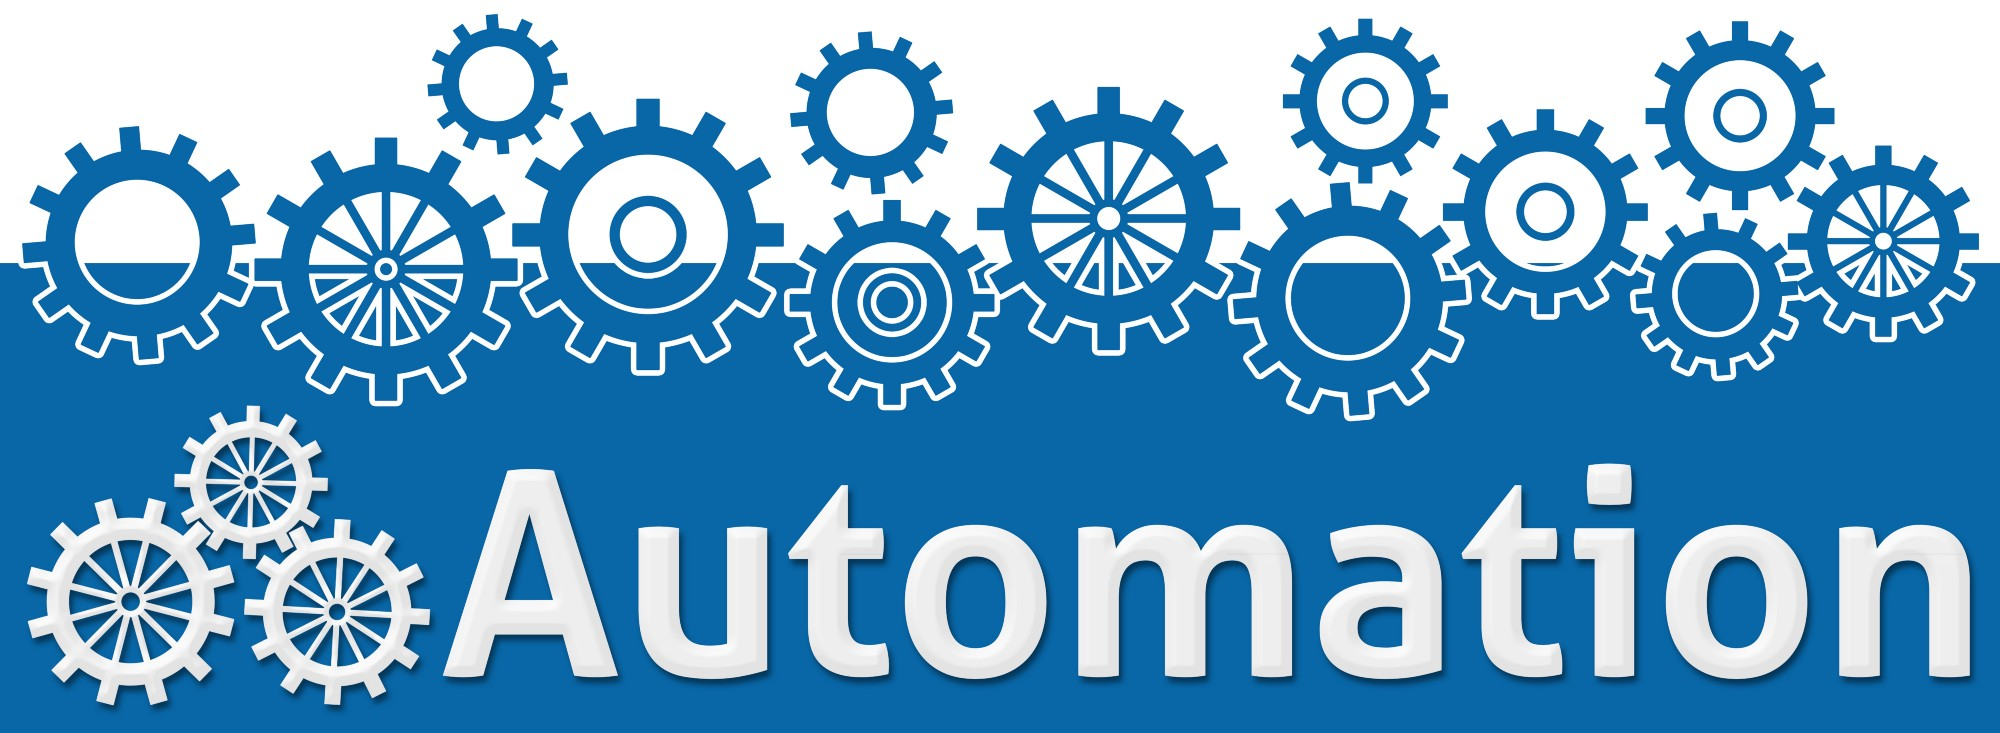 Top 10 Automation company in Bangalore